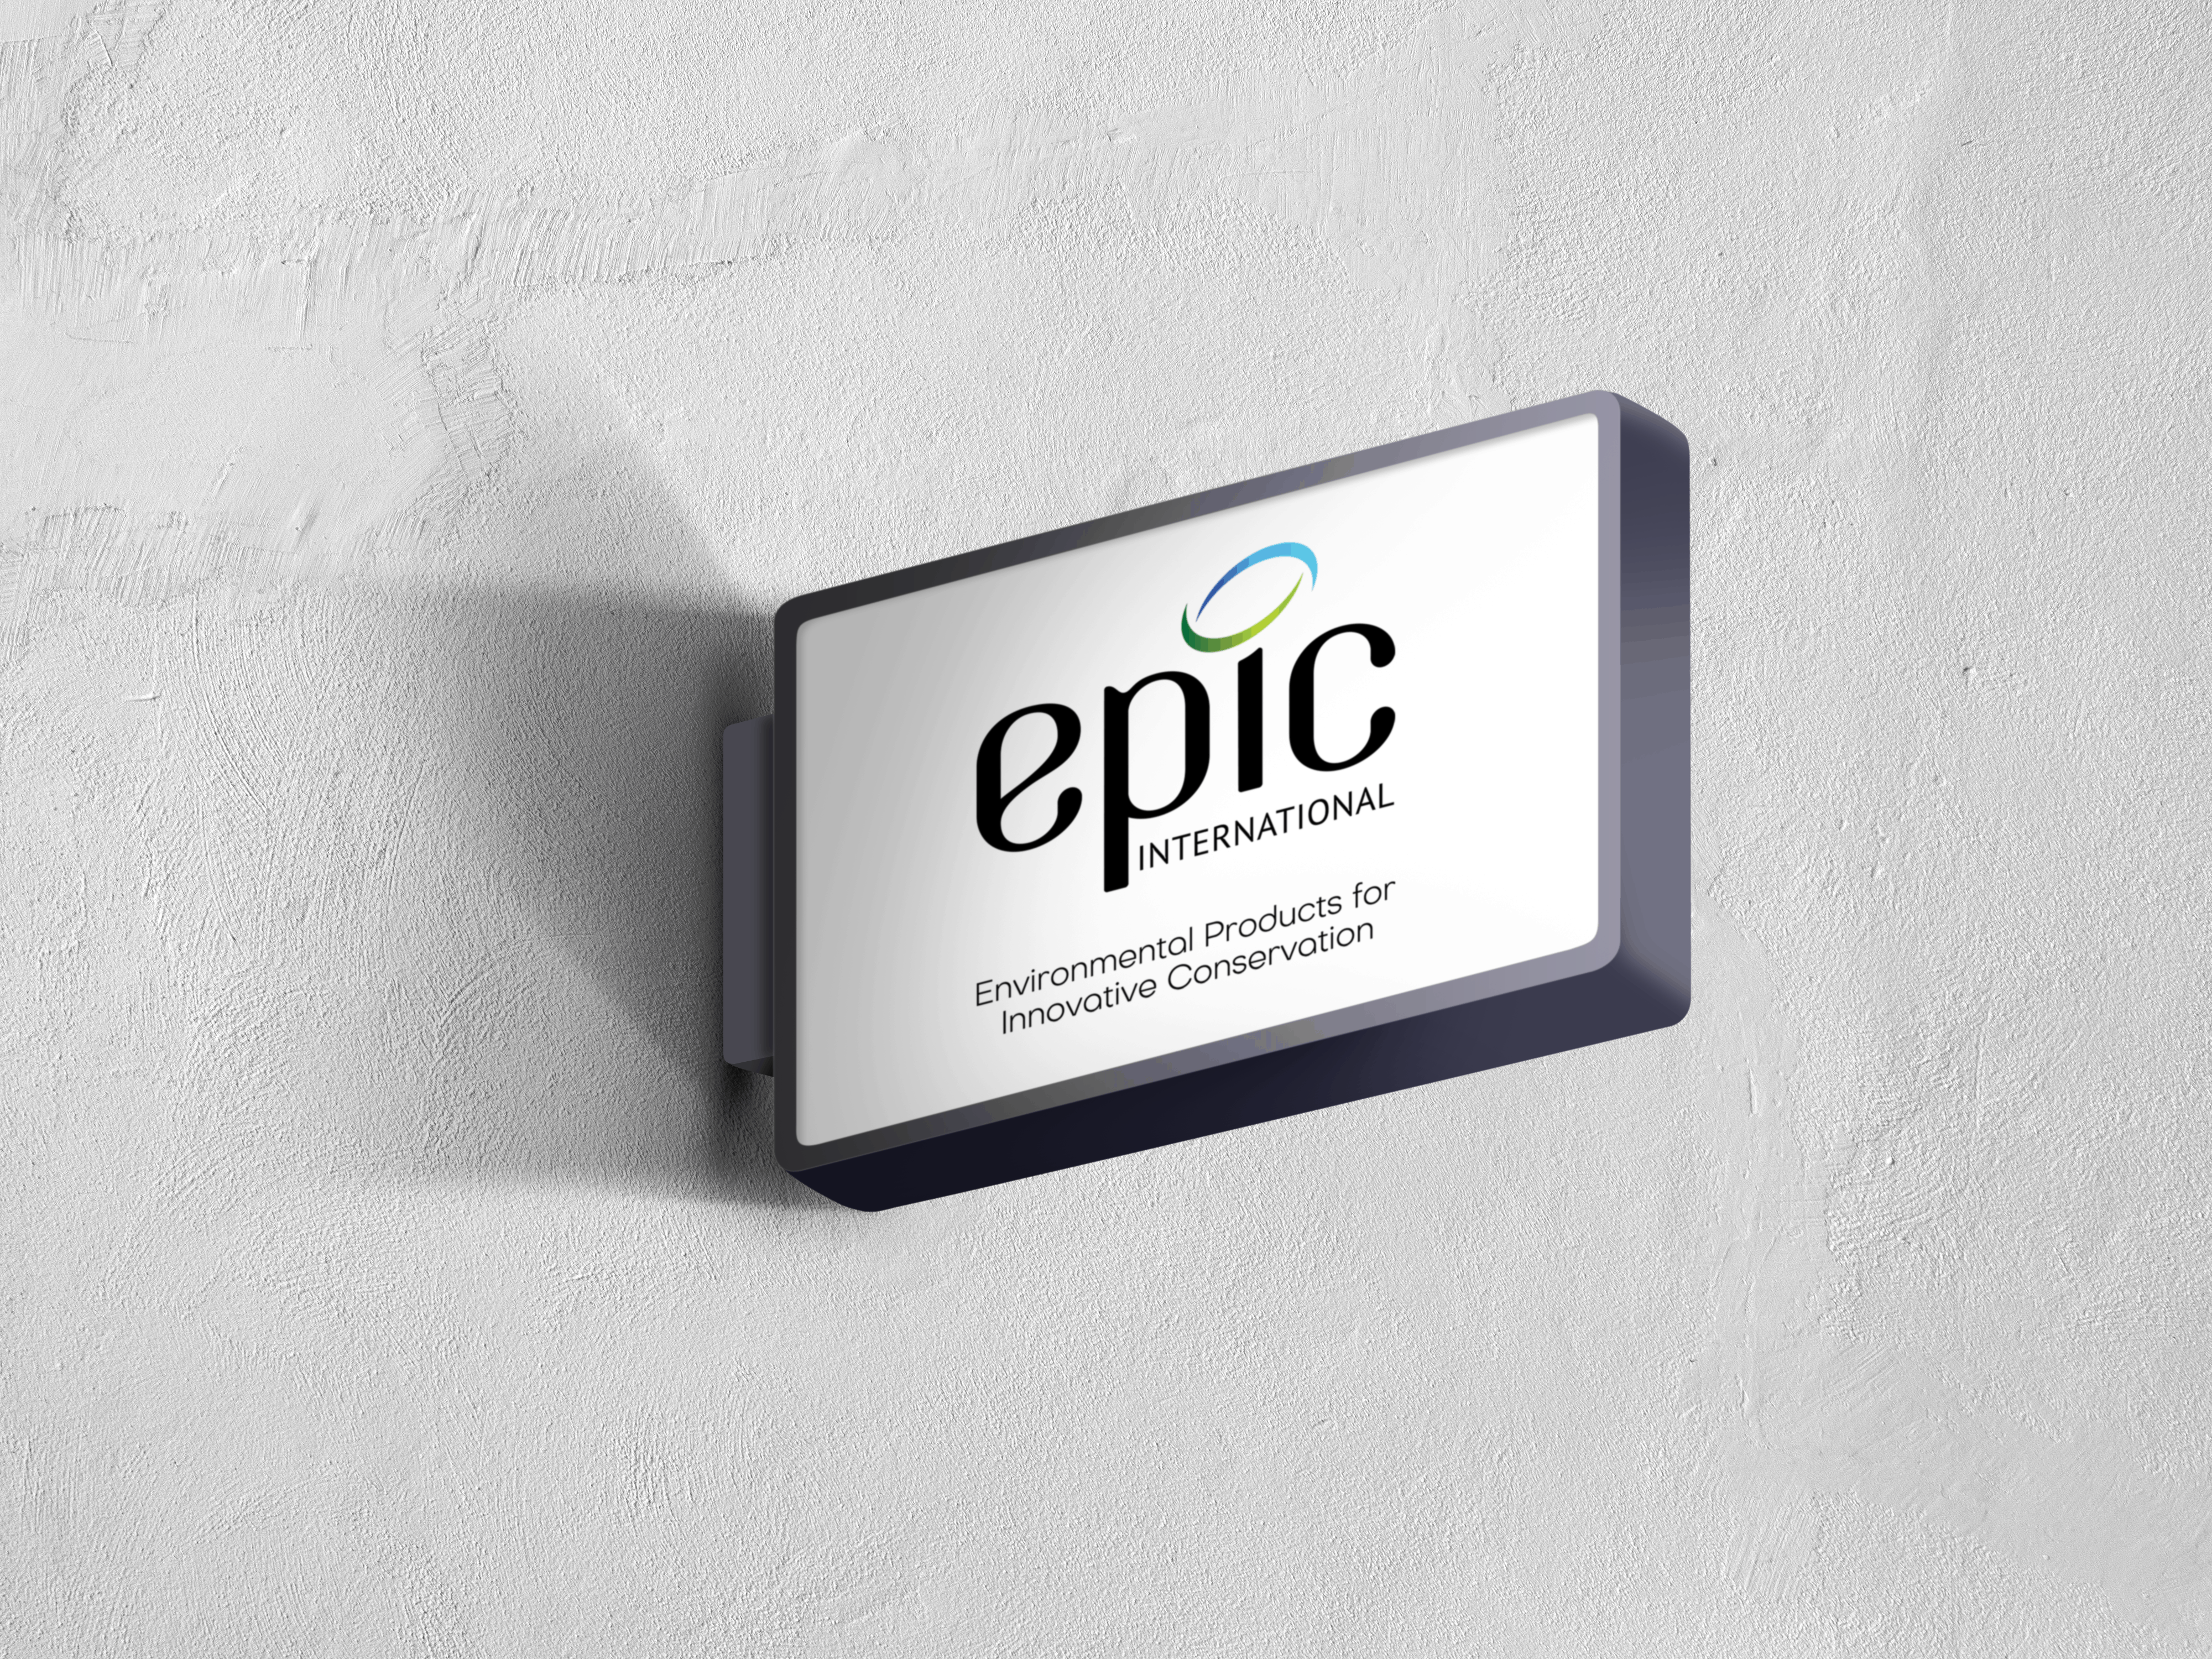 EPIC-Business-Signage-Mockup